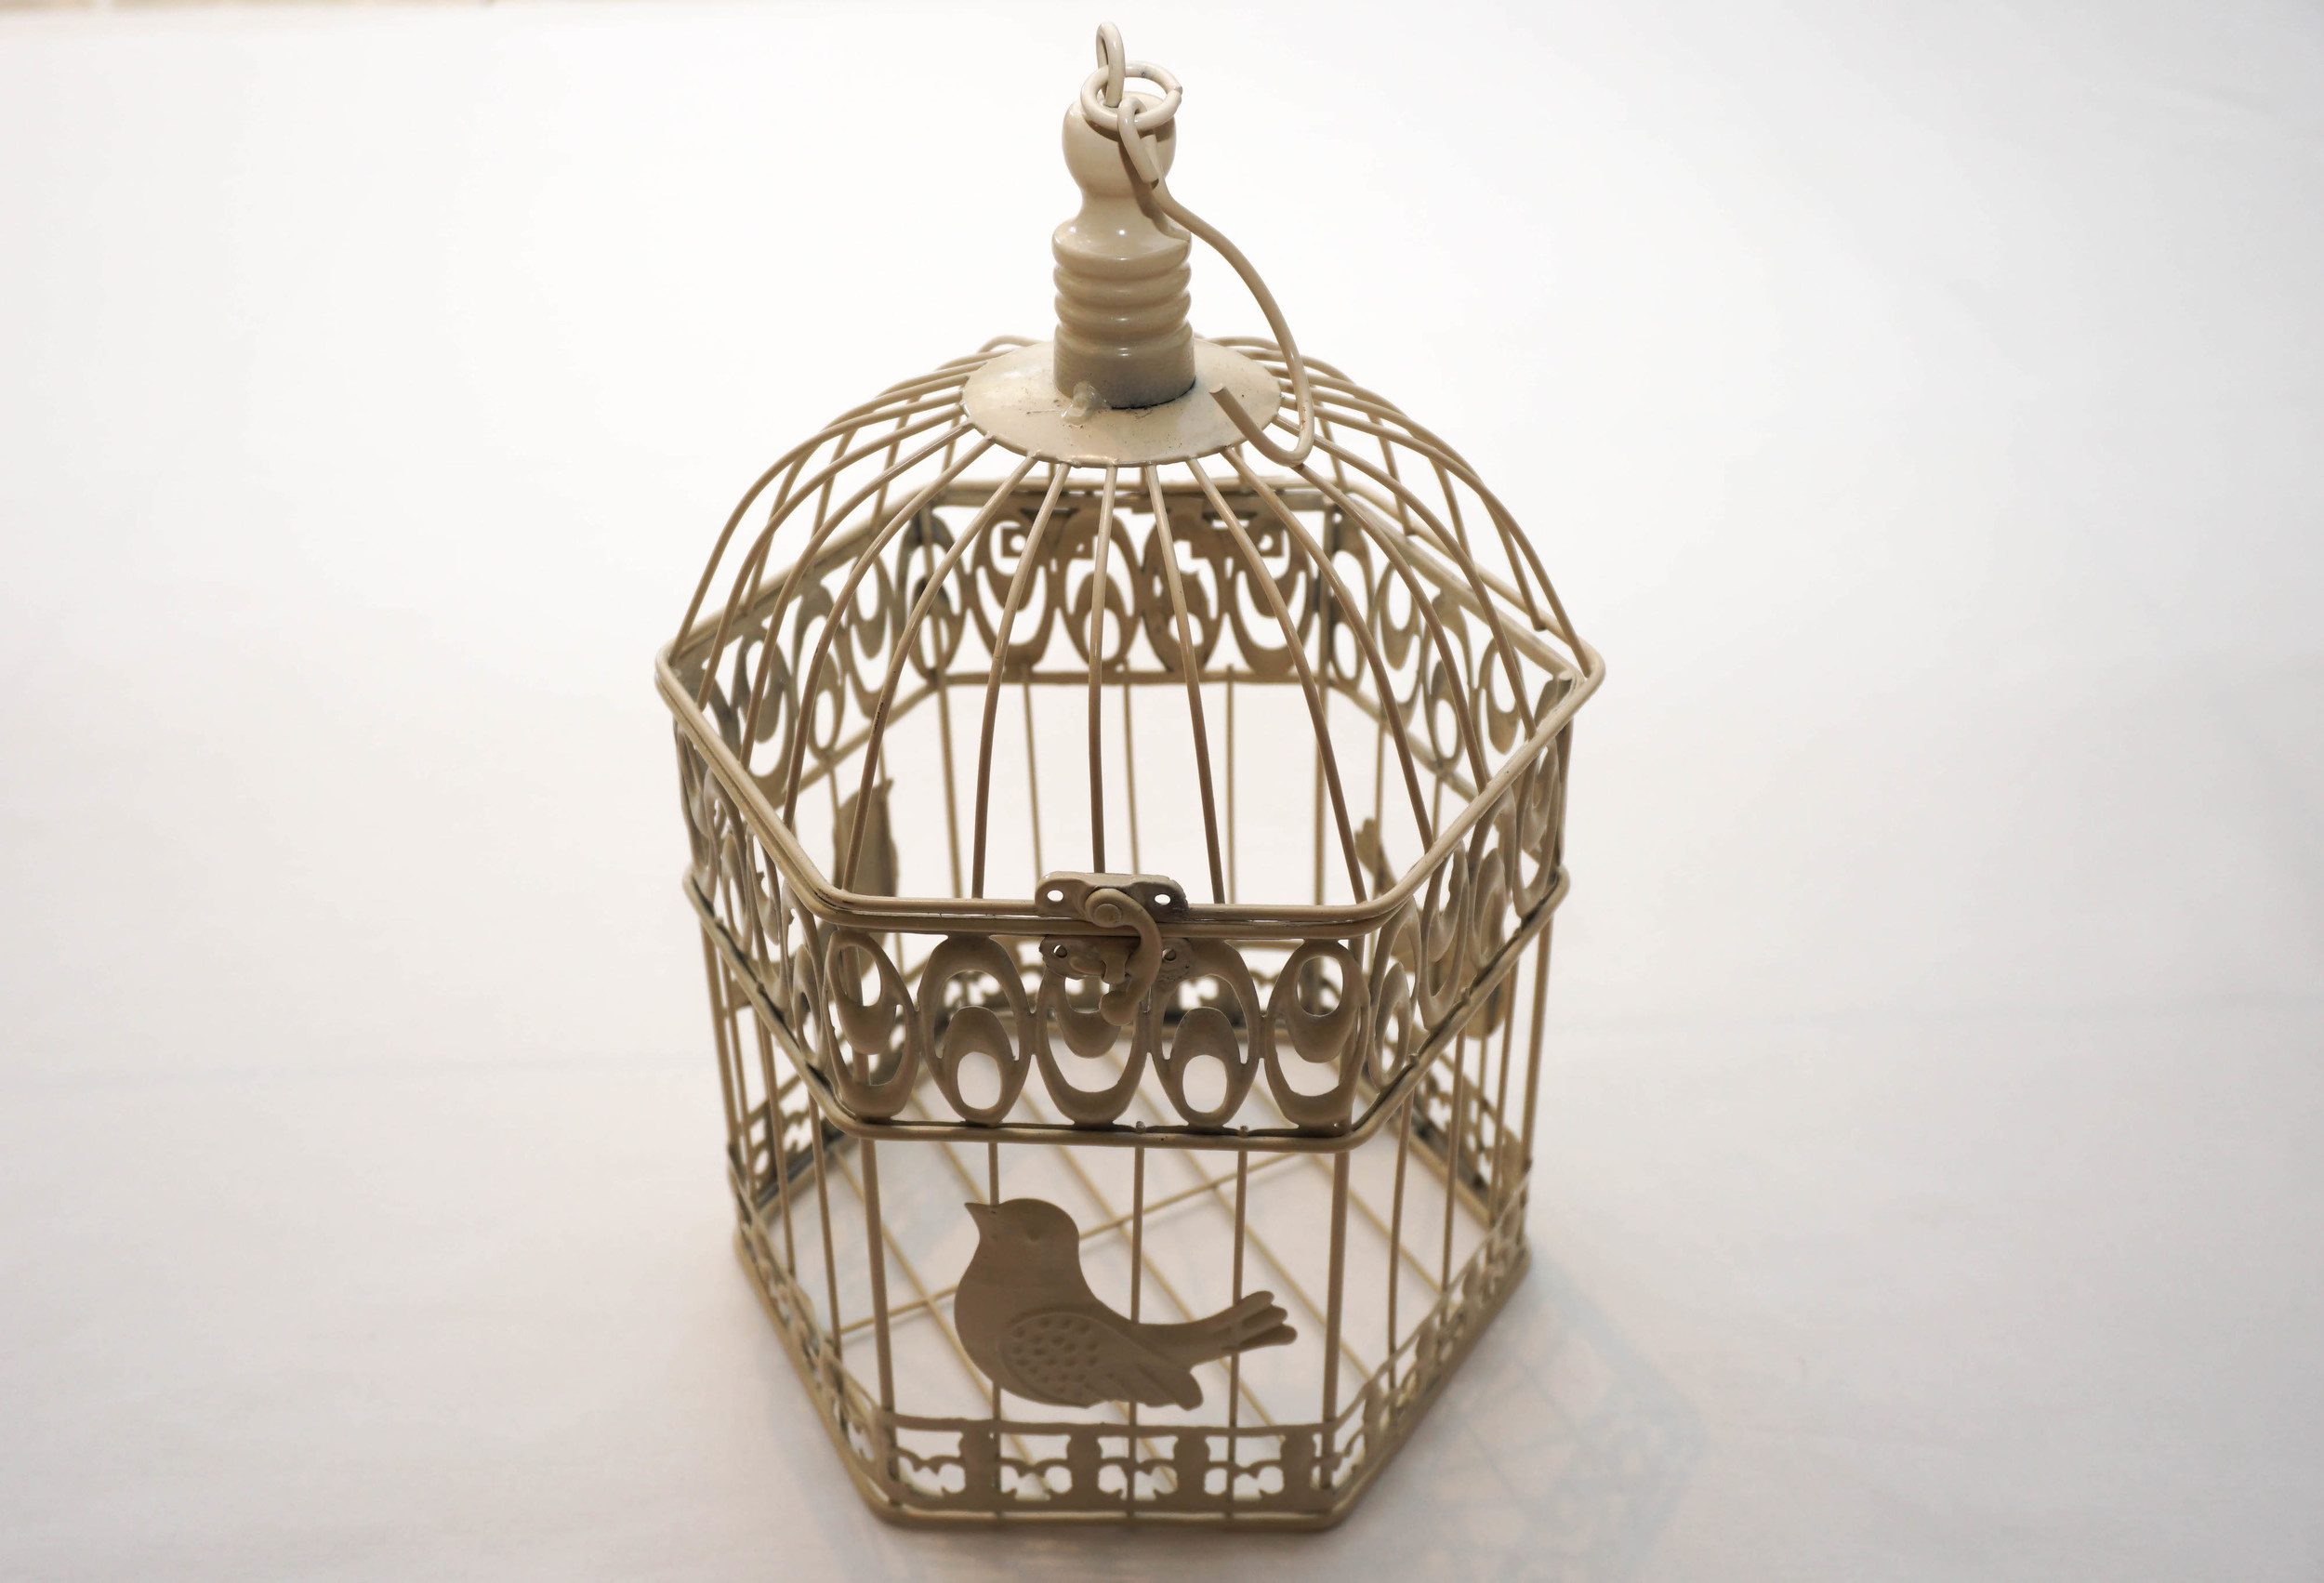 Hire accessories, birdcage, wishing well and candelabras for hire